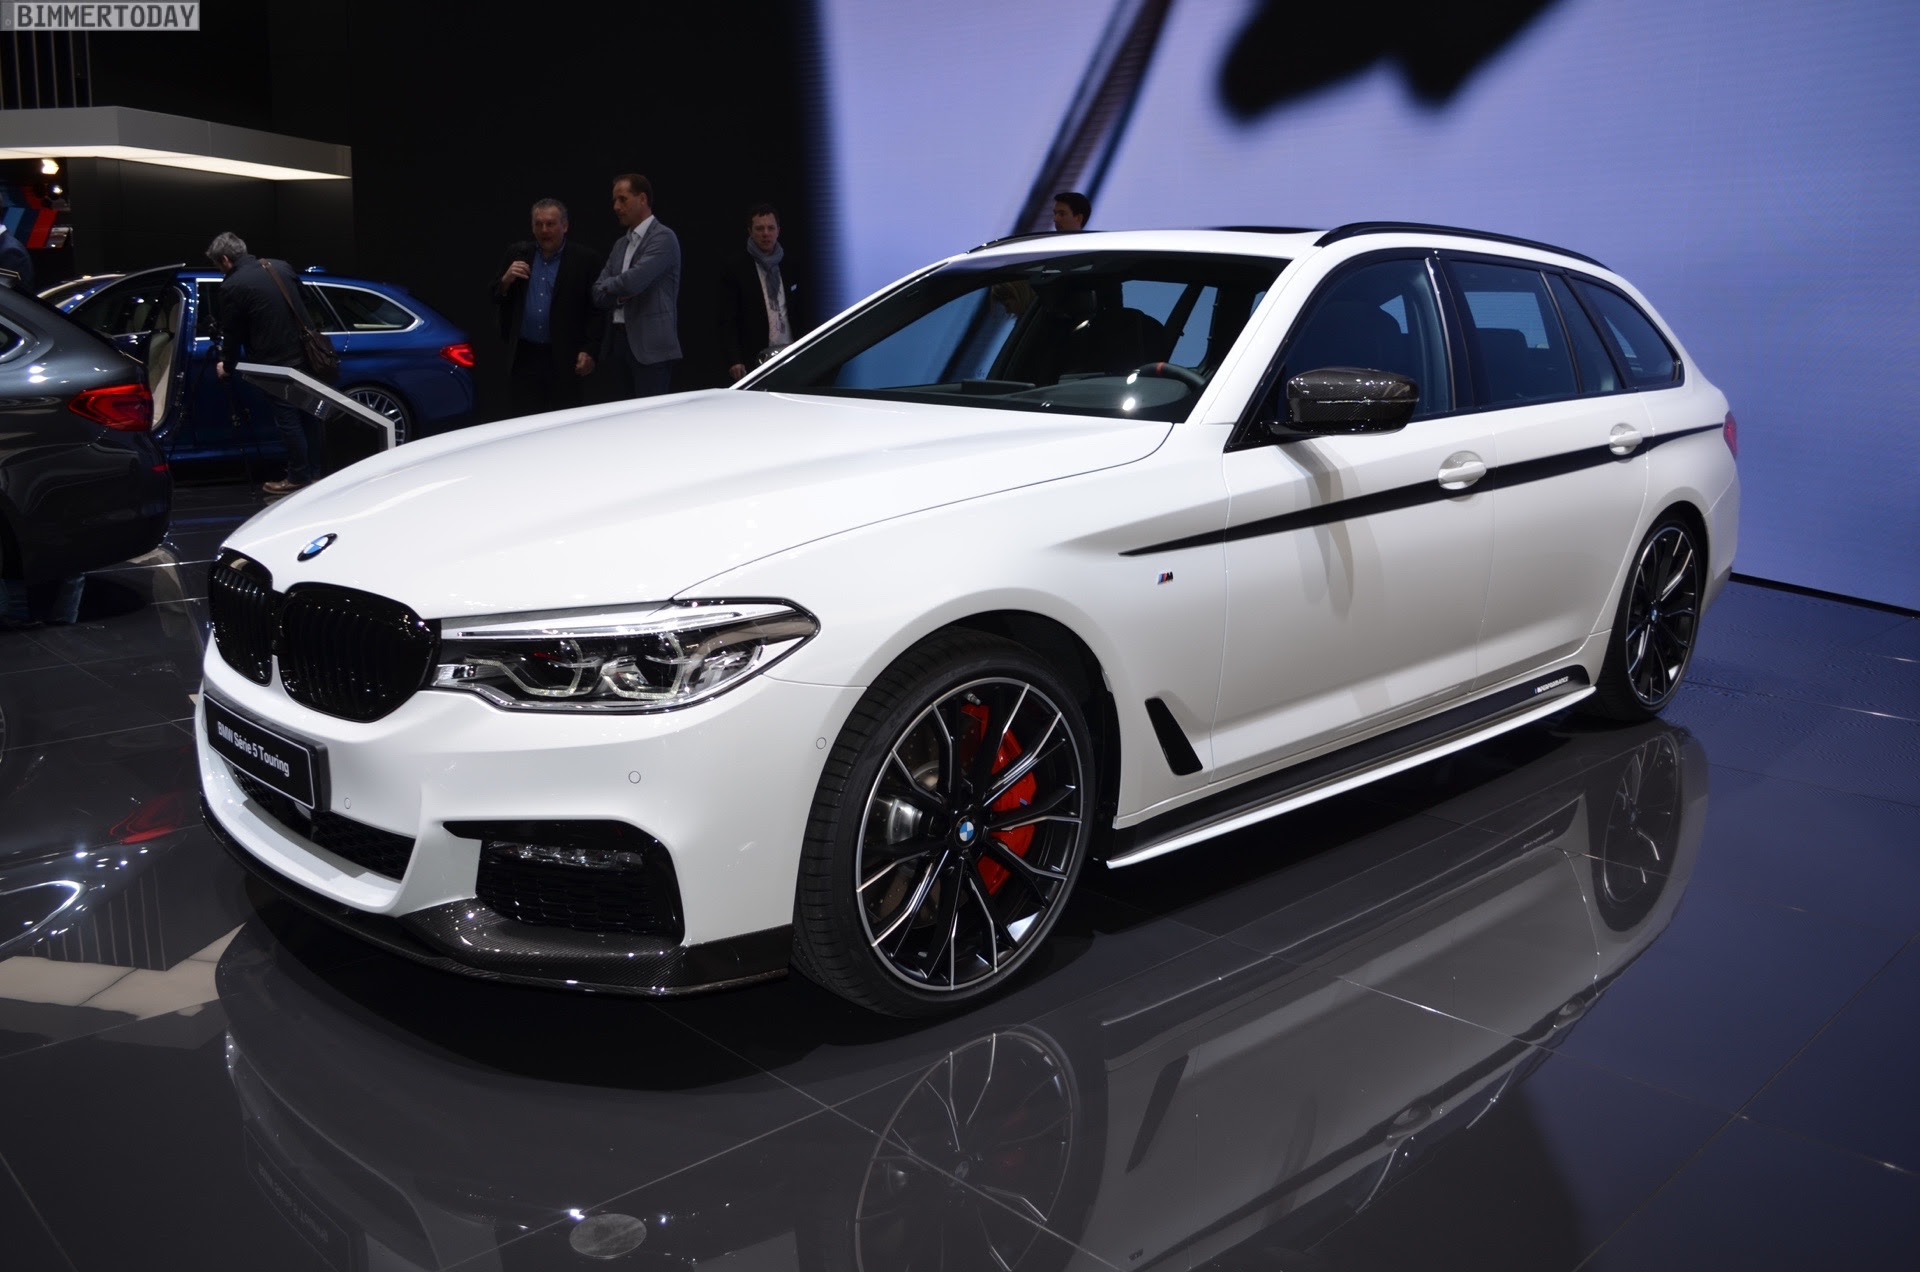 2017 Geneva: BMW 5 Series Touring debuts with M Performance Parts